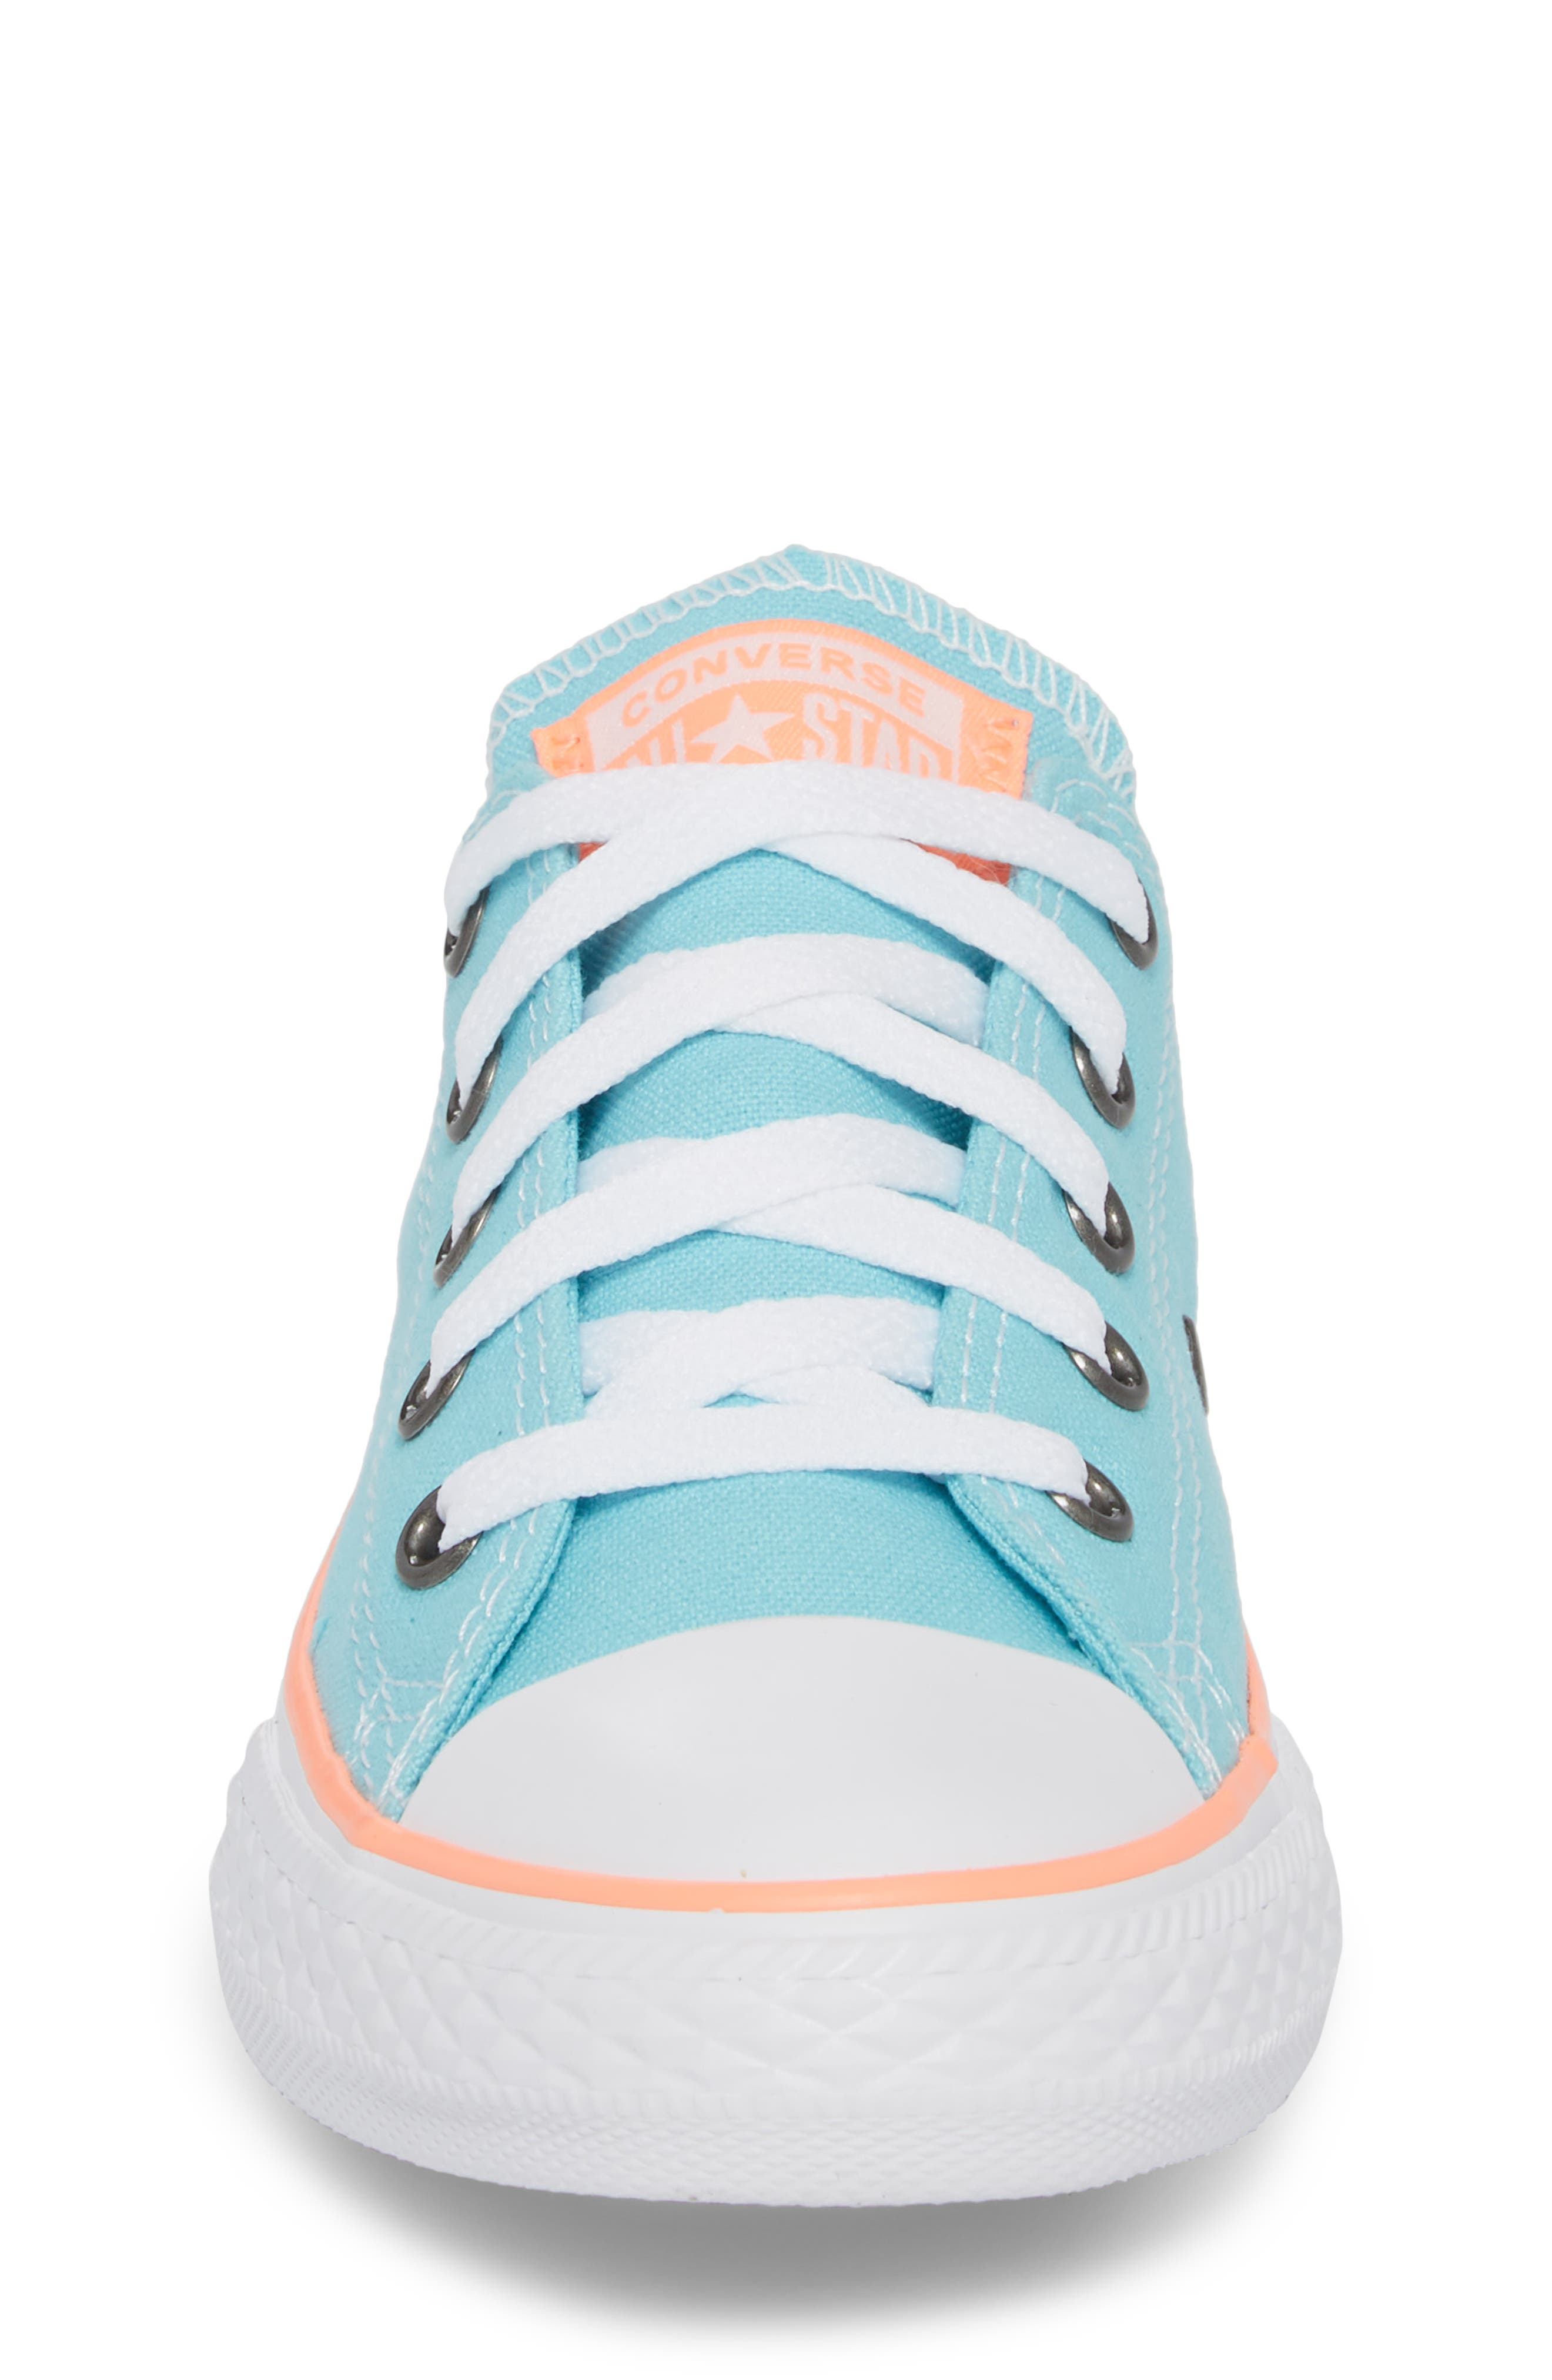 All Star<sup>®</sup> Low Top Sneaker,                             Alternate thumbnail 4, color,                             486